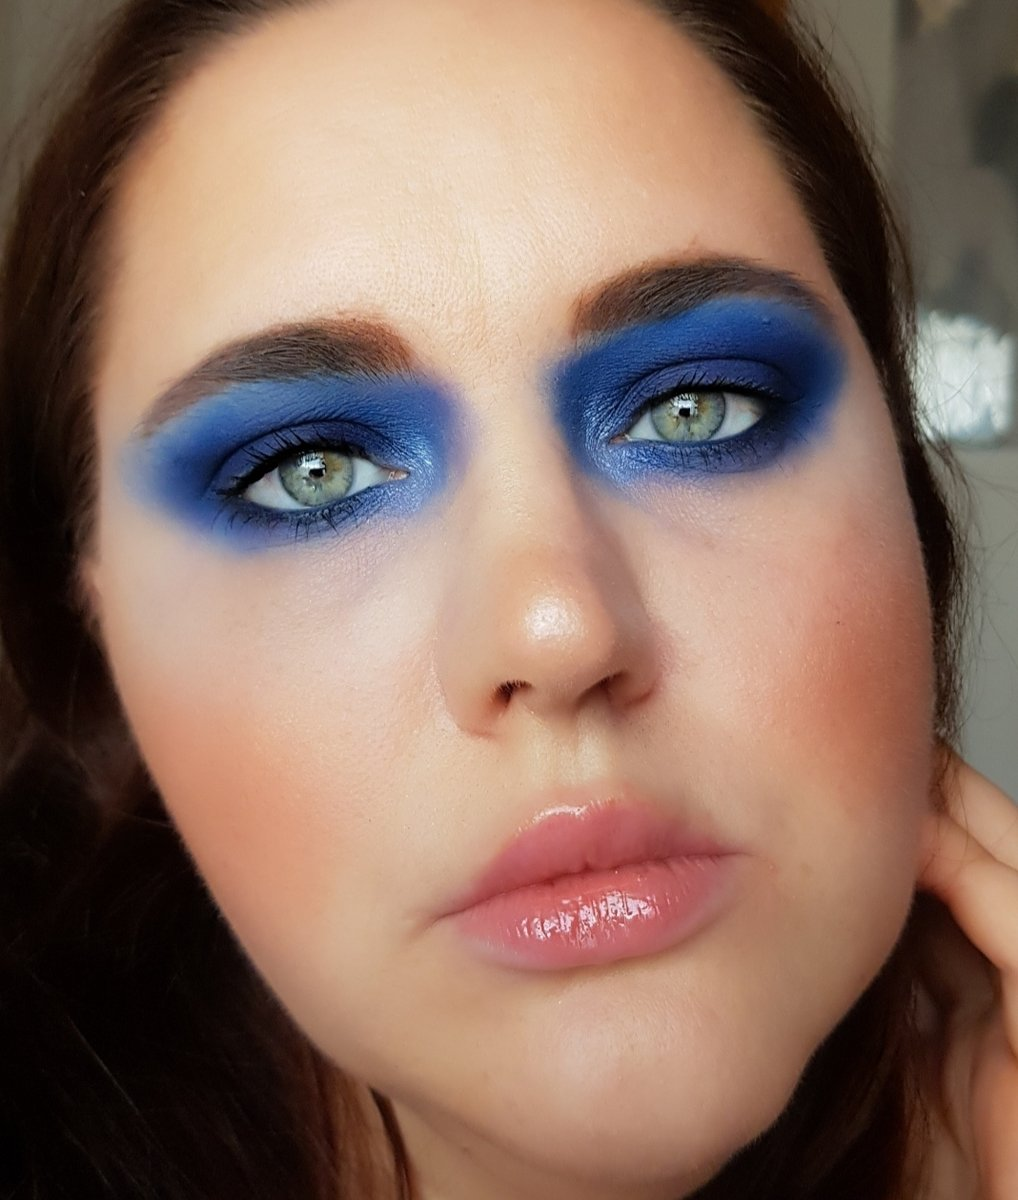 I just wanted to do a smoky blue eyeshadow look ^,^ well why not? super simple!⁠ #nikkihelena #makeup #beauty #fullface #dior #anastasiabeverlyhills #jouer #becca #mac #abh #fenty #undiscoveredmua #undiscoveredmuas #mua #makeupartist #makeupaddict #bobbibrownpic.twitter.com/8ELUkePO5T